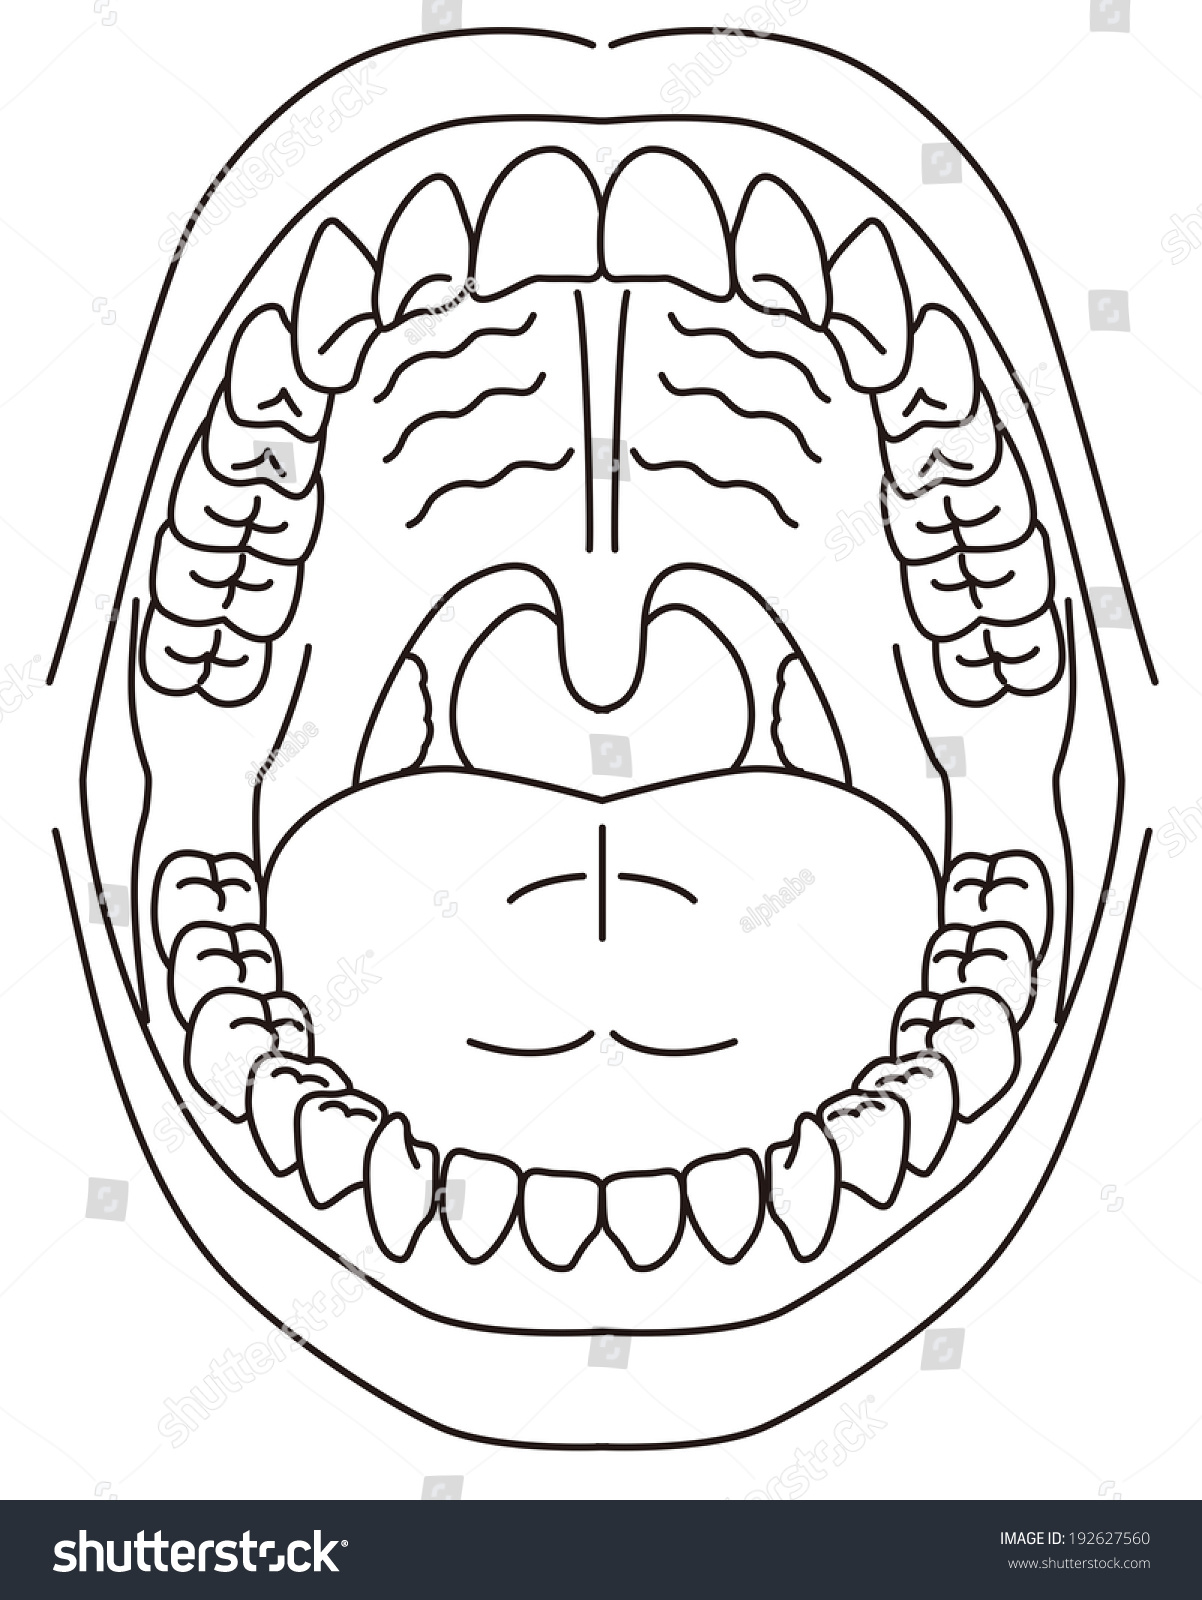 stock vector schematic diagram of the oral cavity 192627560 schematic diagram oral cavity stock vector (royalty free) 192627560